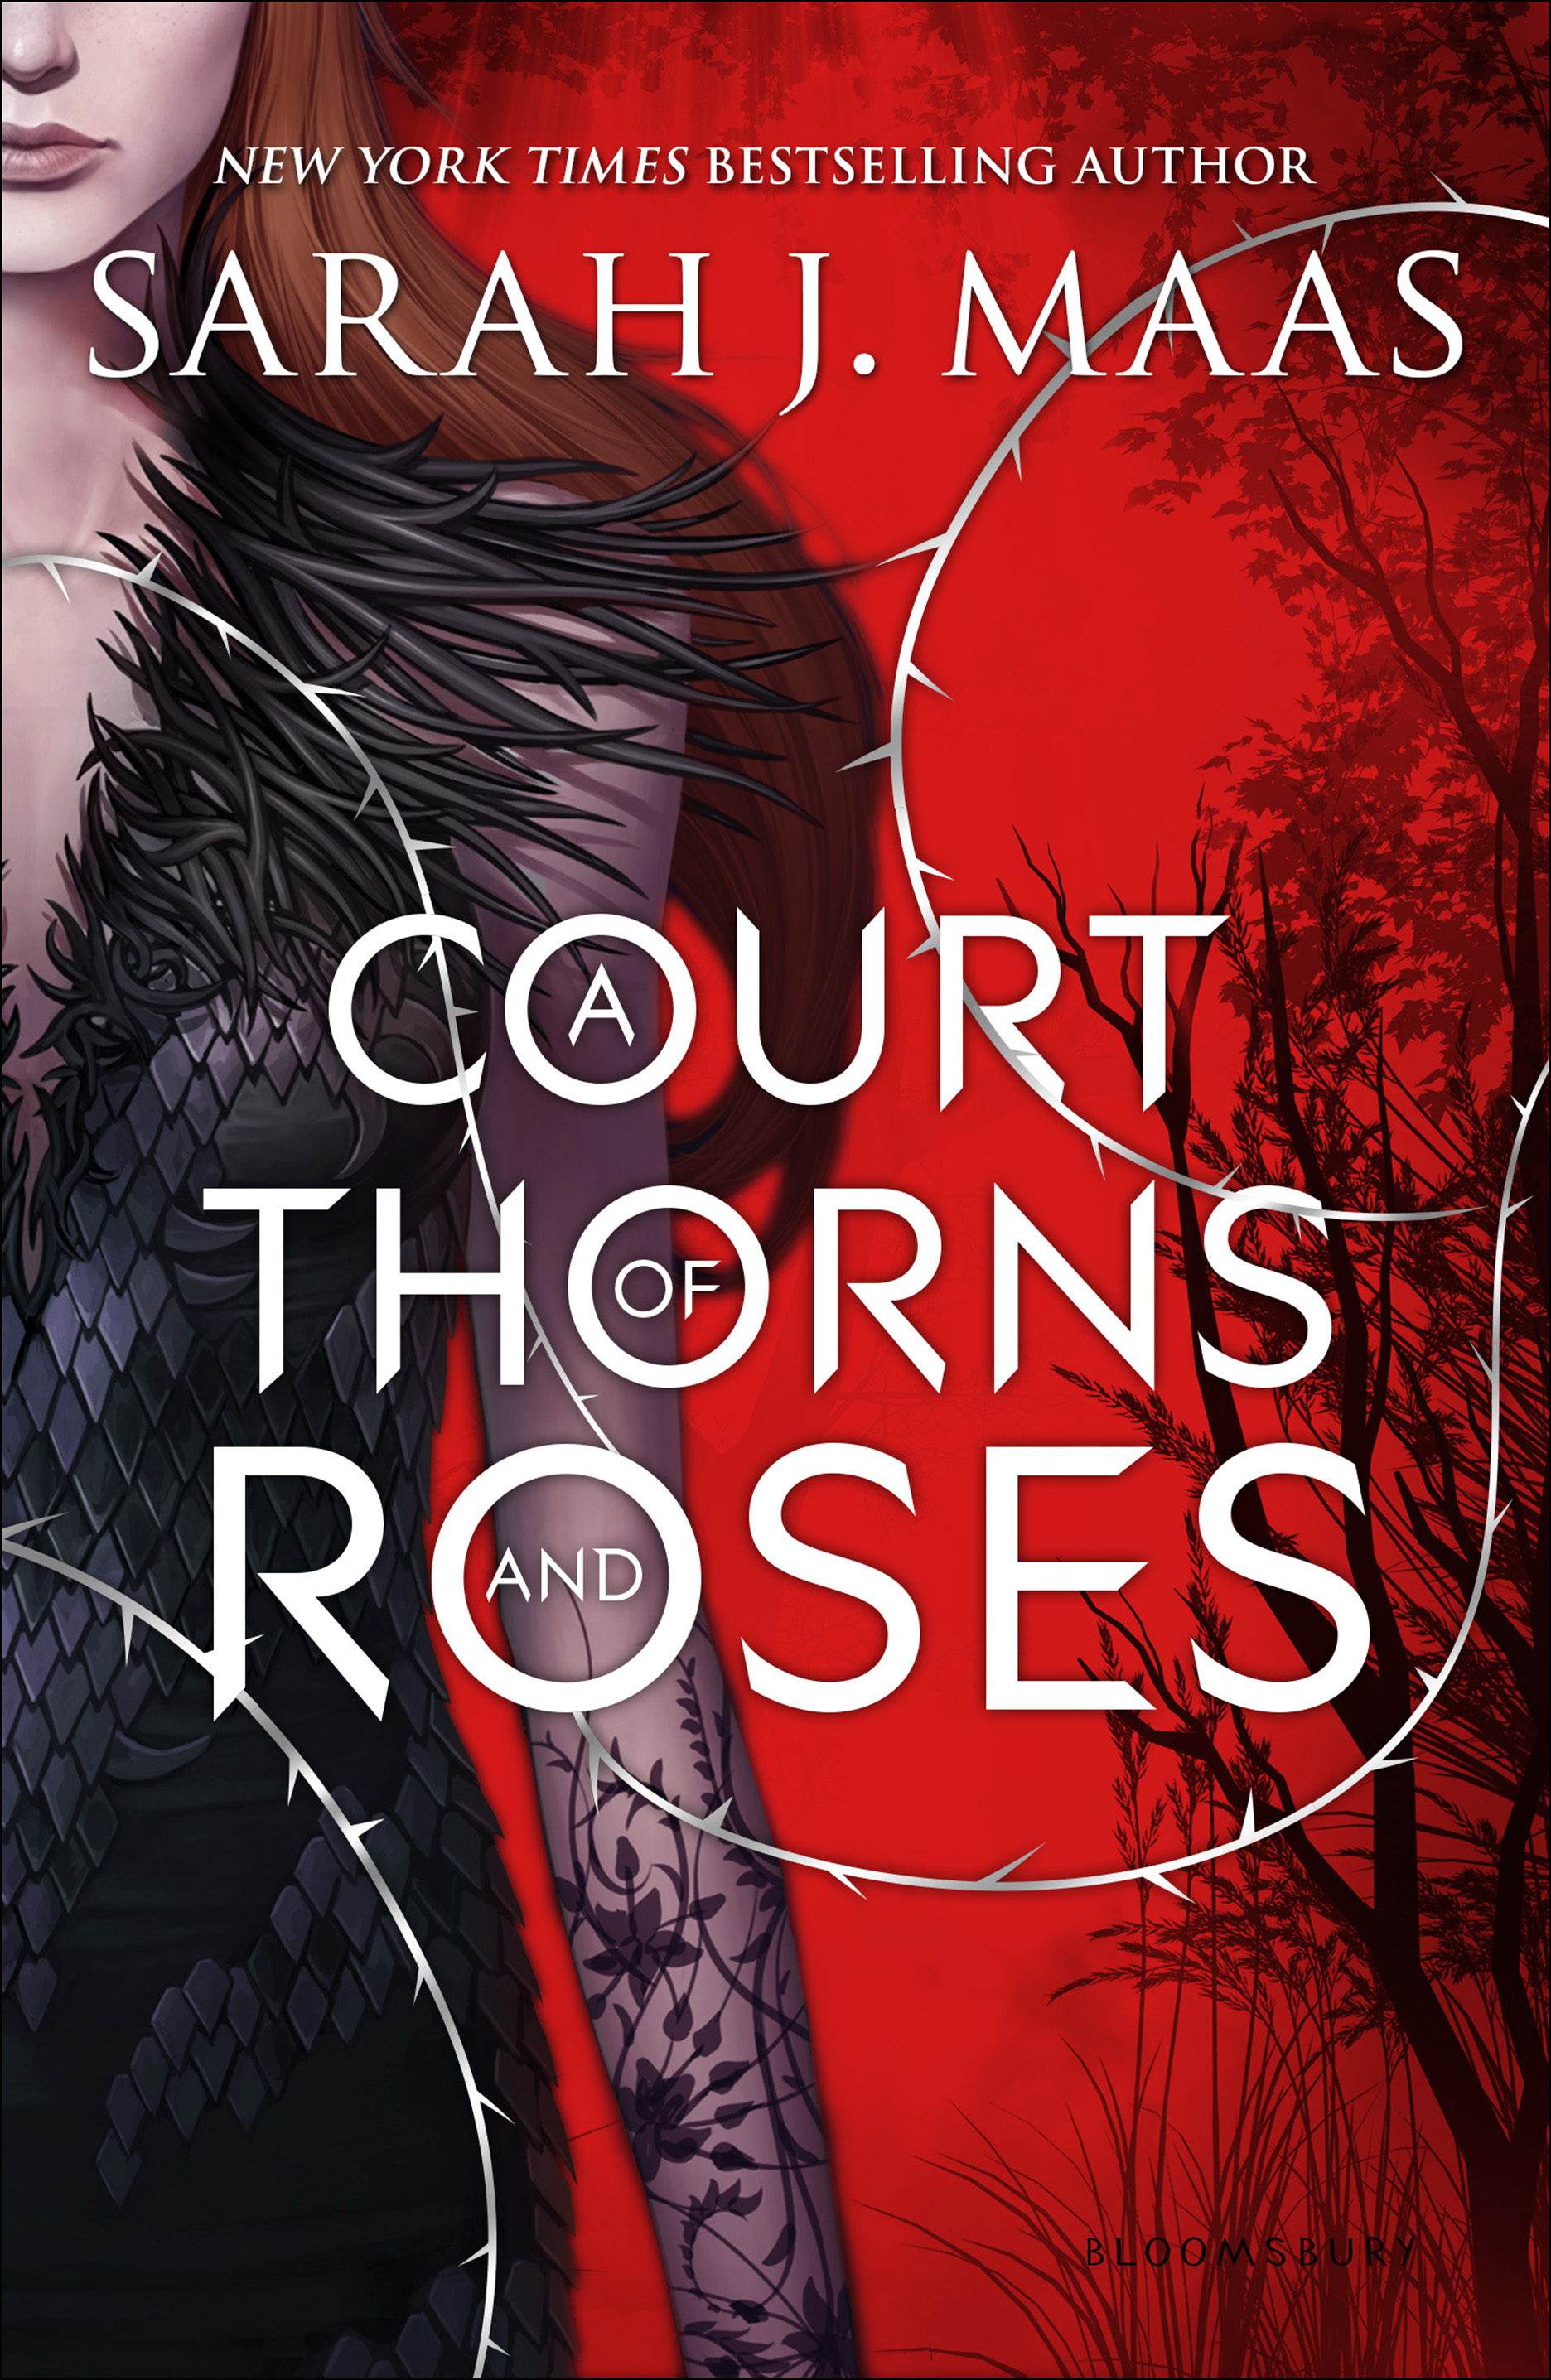 Resultado de imagen de a court of thorns and roses